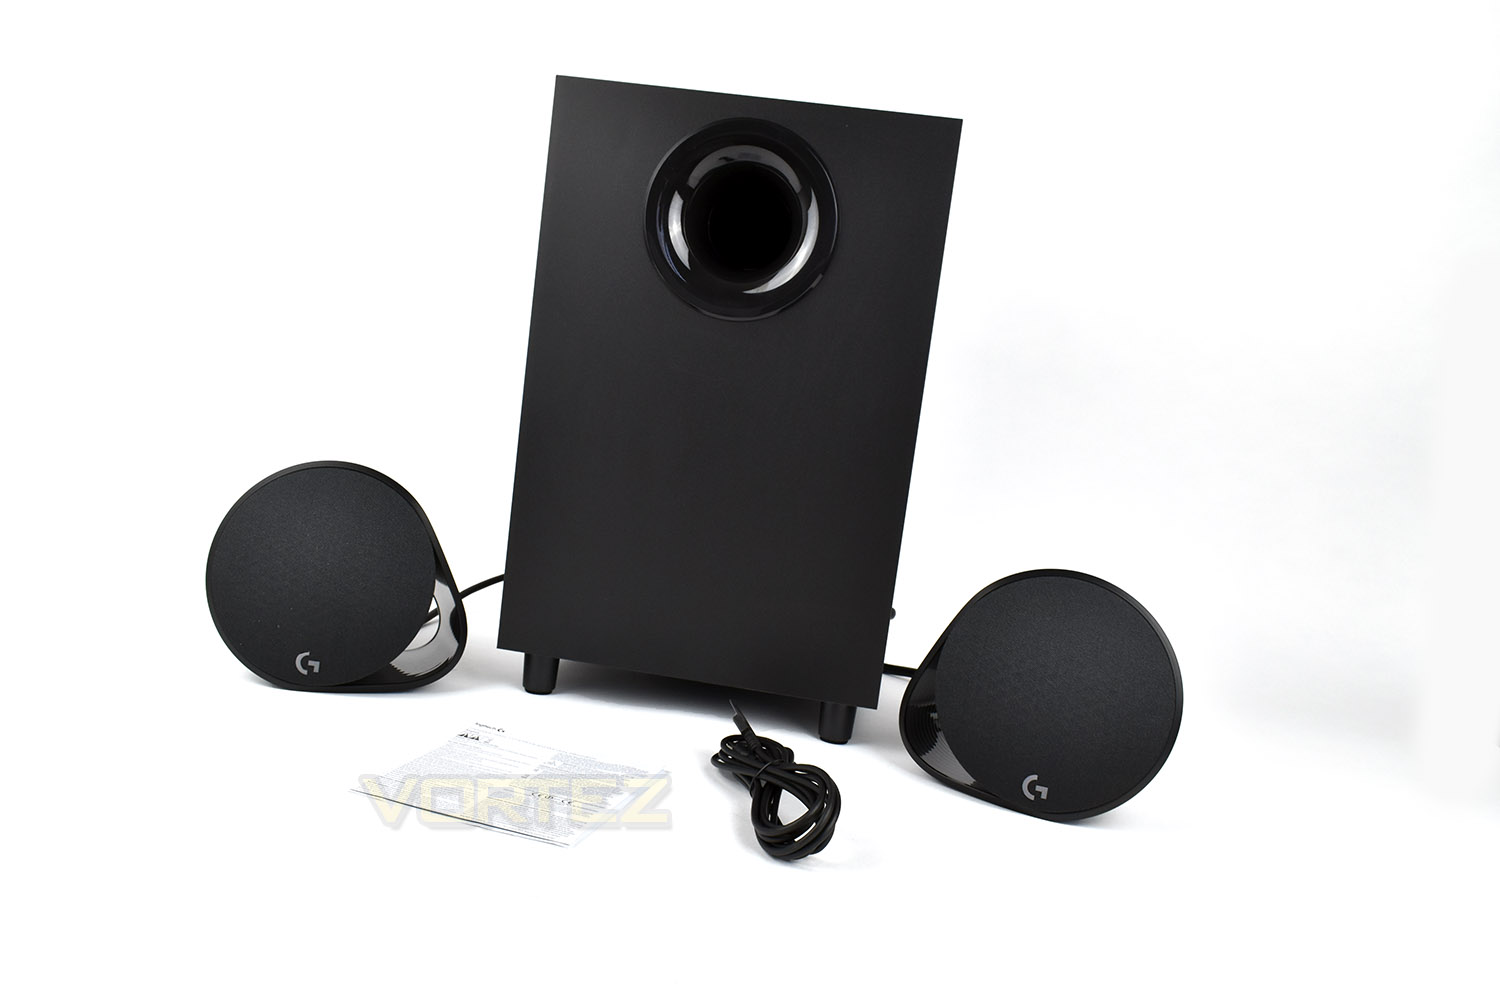 Logitech G560 Rgb Pc Gaming Speakers Review Packaging First Look Lightsync Speaker Included In The Box Is A Subwoofer Pair Of Tweeters Usb Connection Cable And Small Leaflet On Warranty Information 35mm To Wouldve